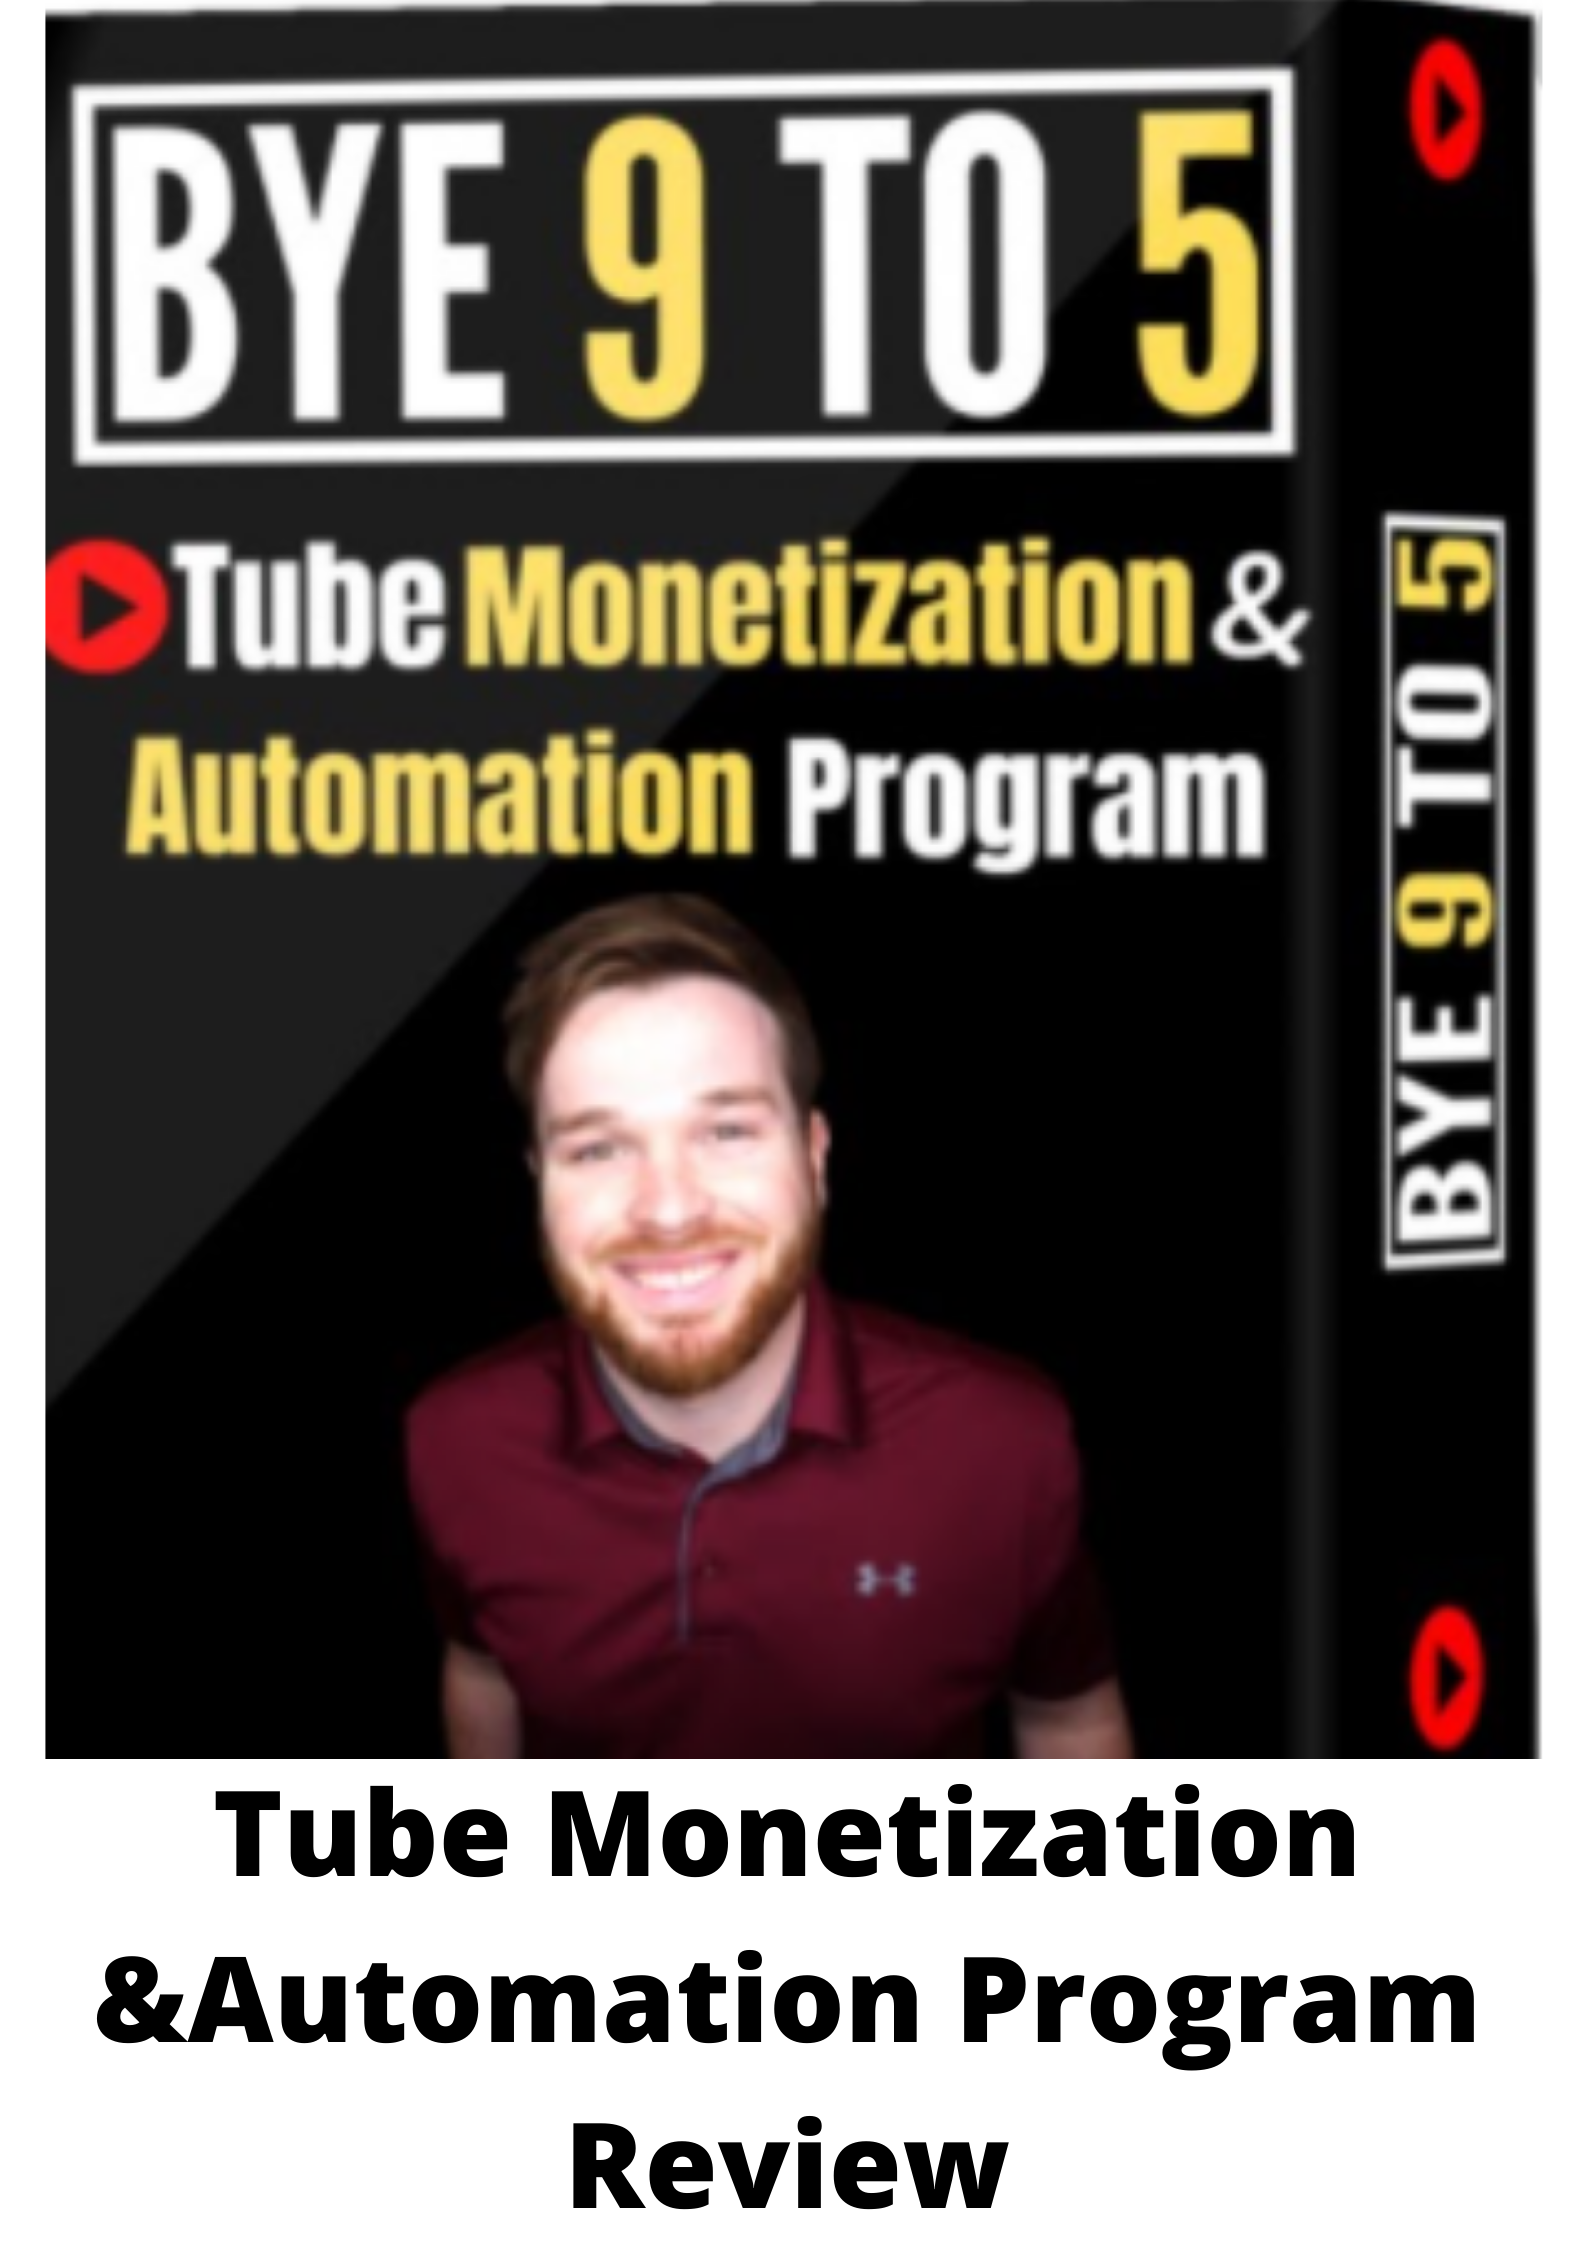 Tube monetization and automation program review